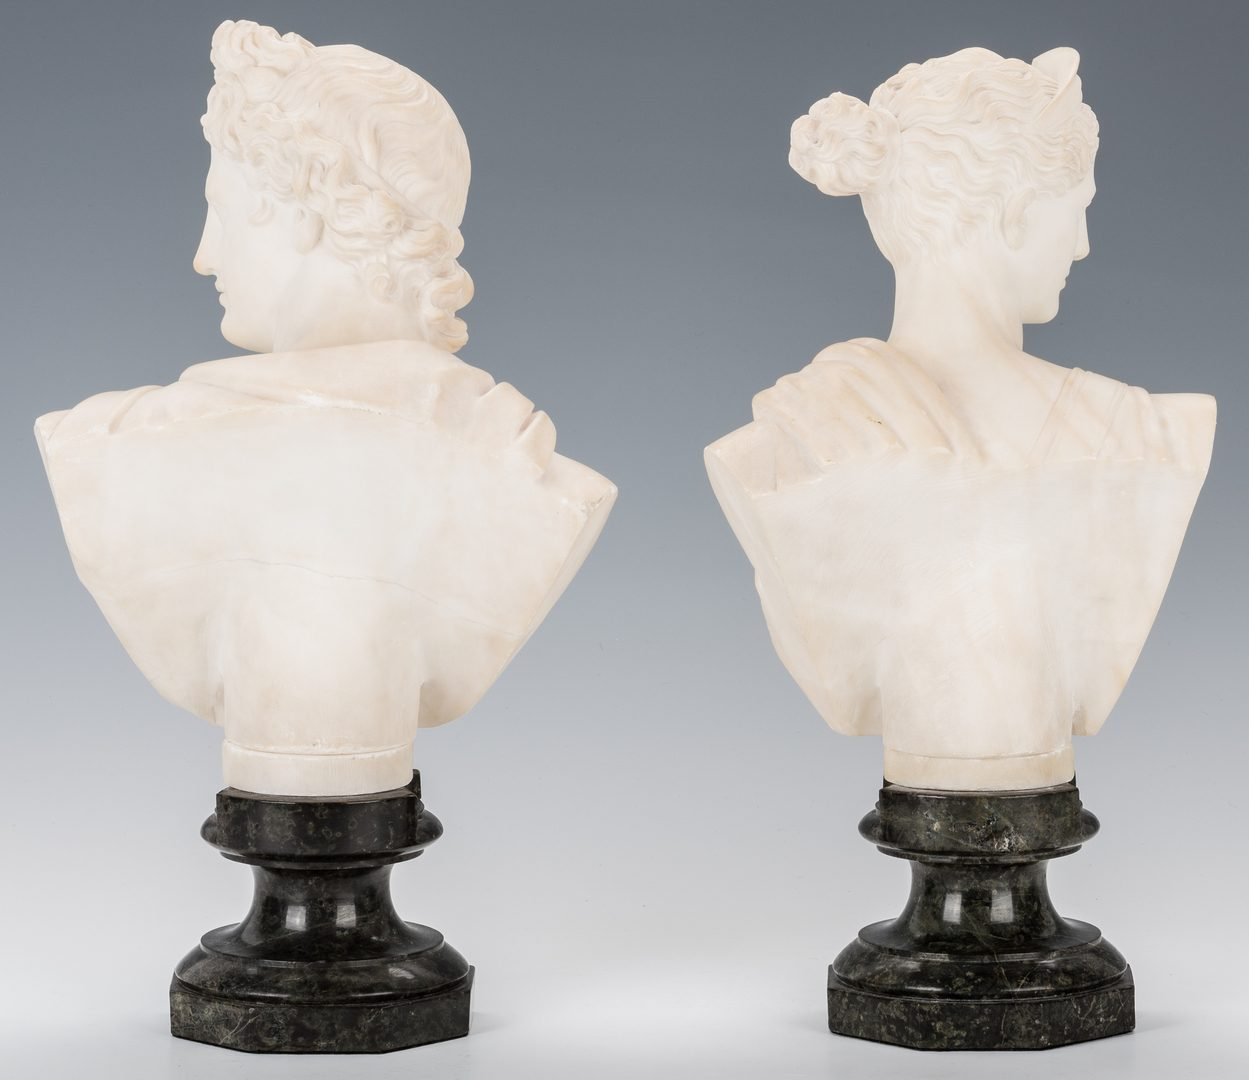 Lot 558: Pair of Carved Classical Alabaster Busts